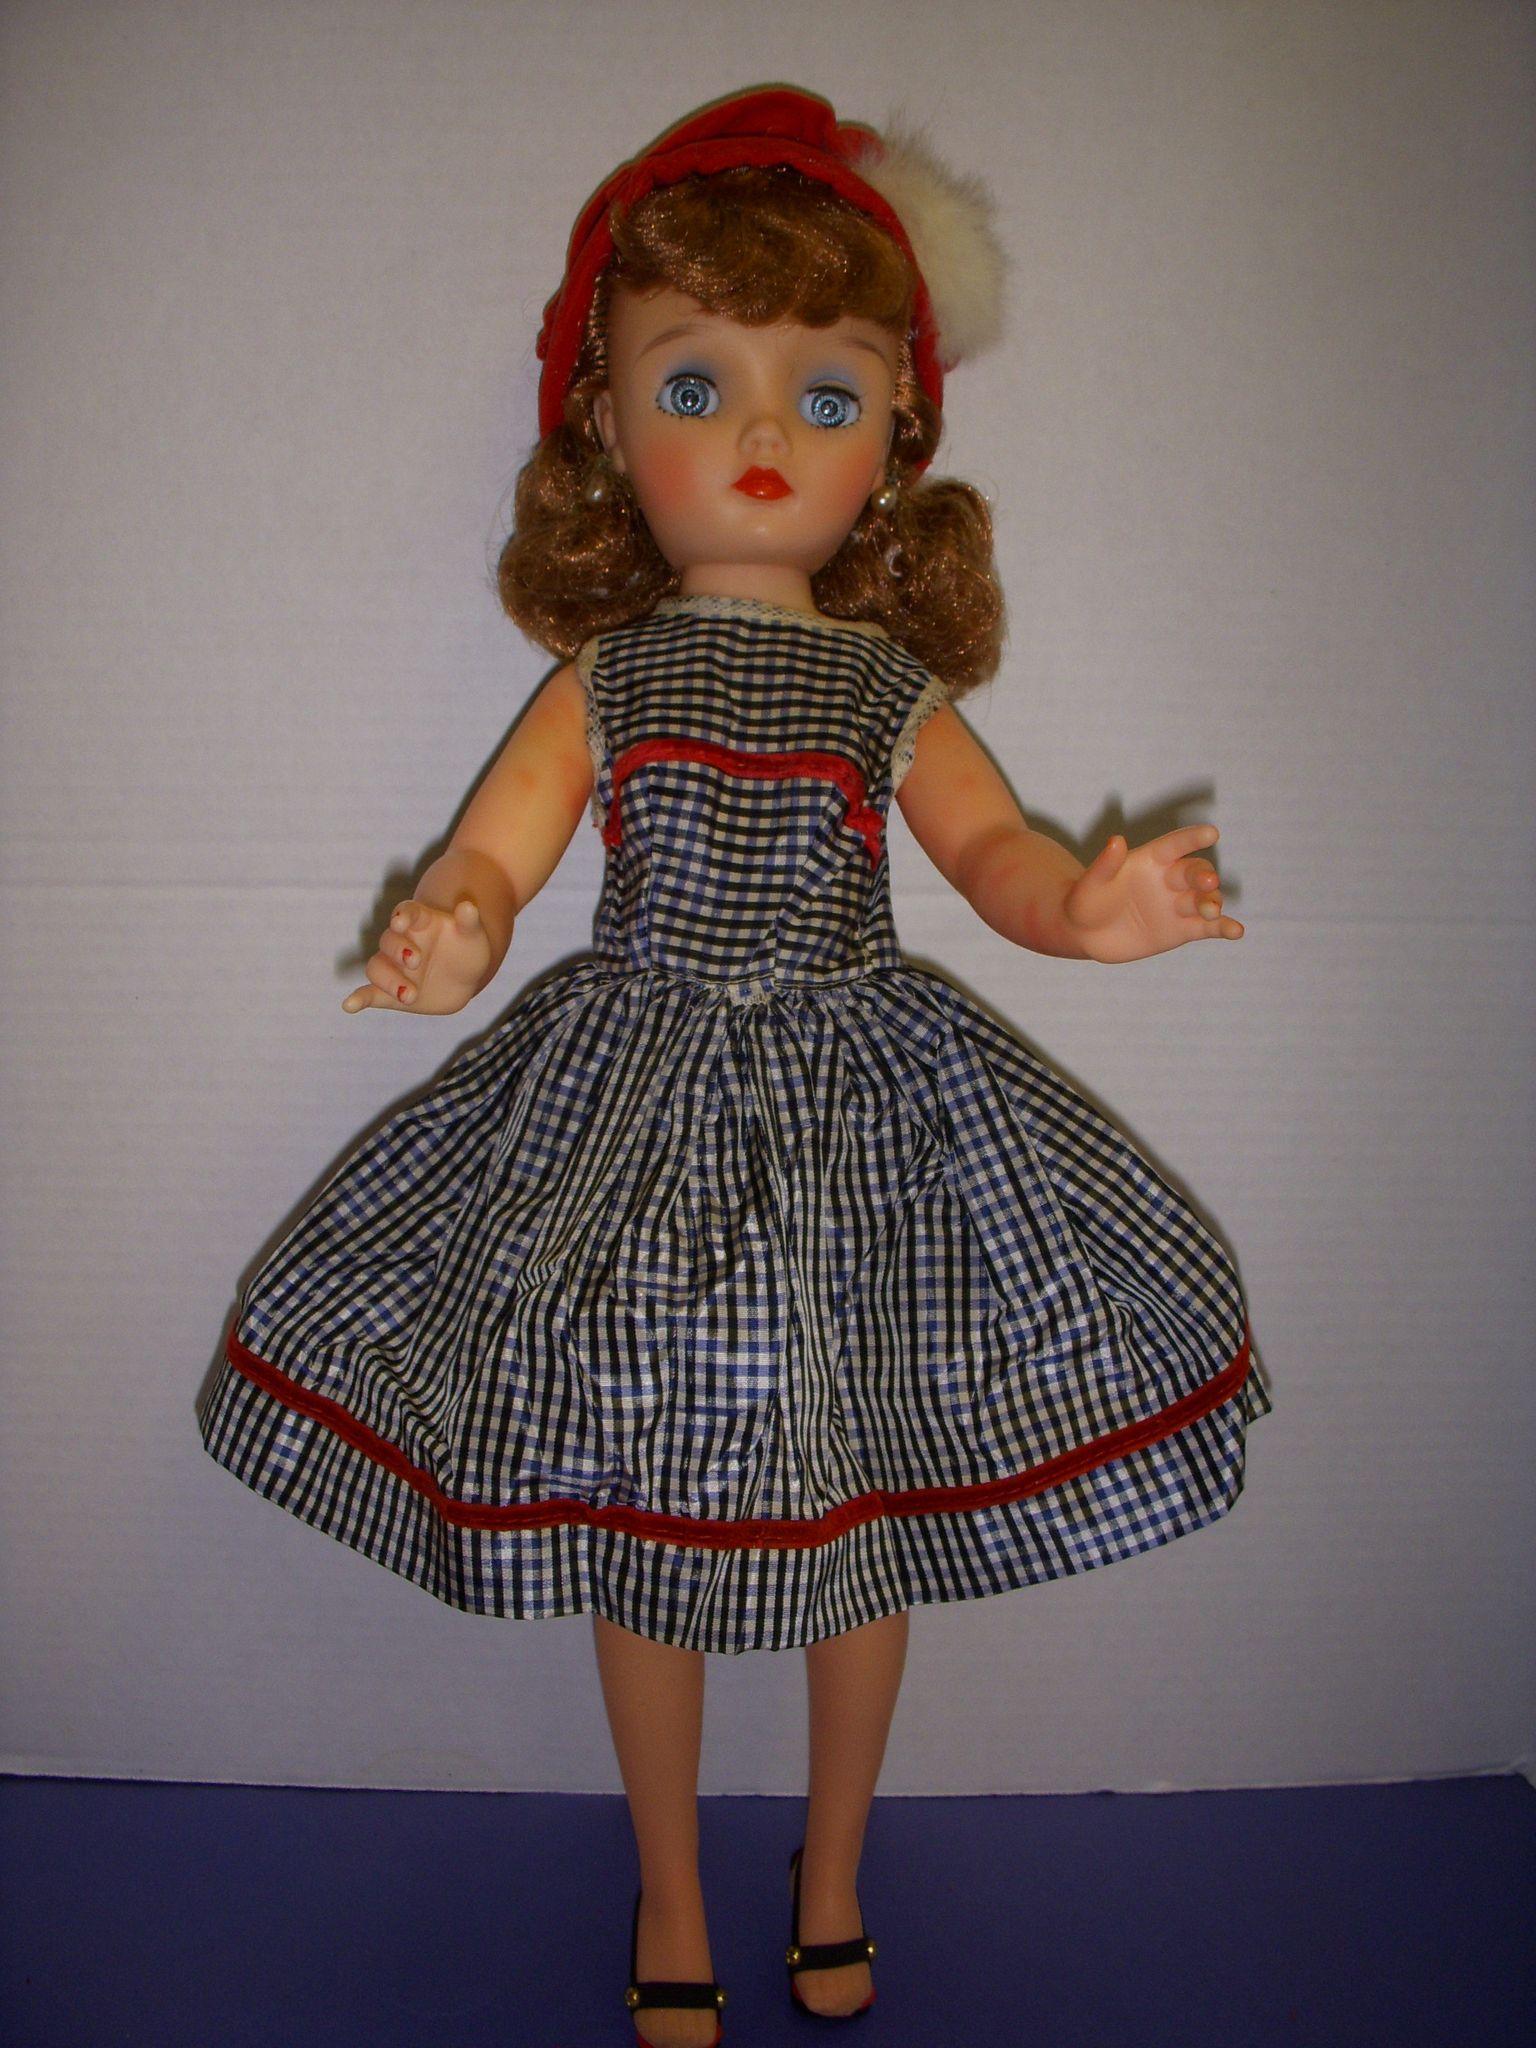 Vintage 1950s 19 Quot Eegee Fashion Doll All Original From